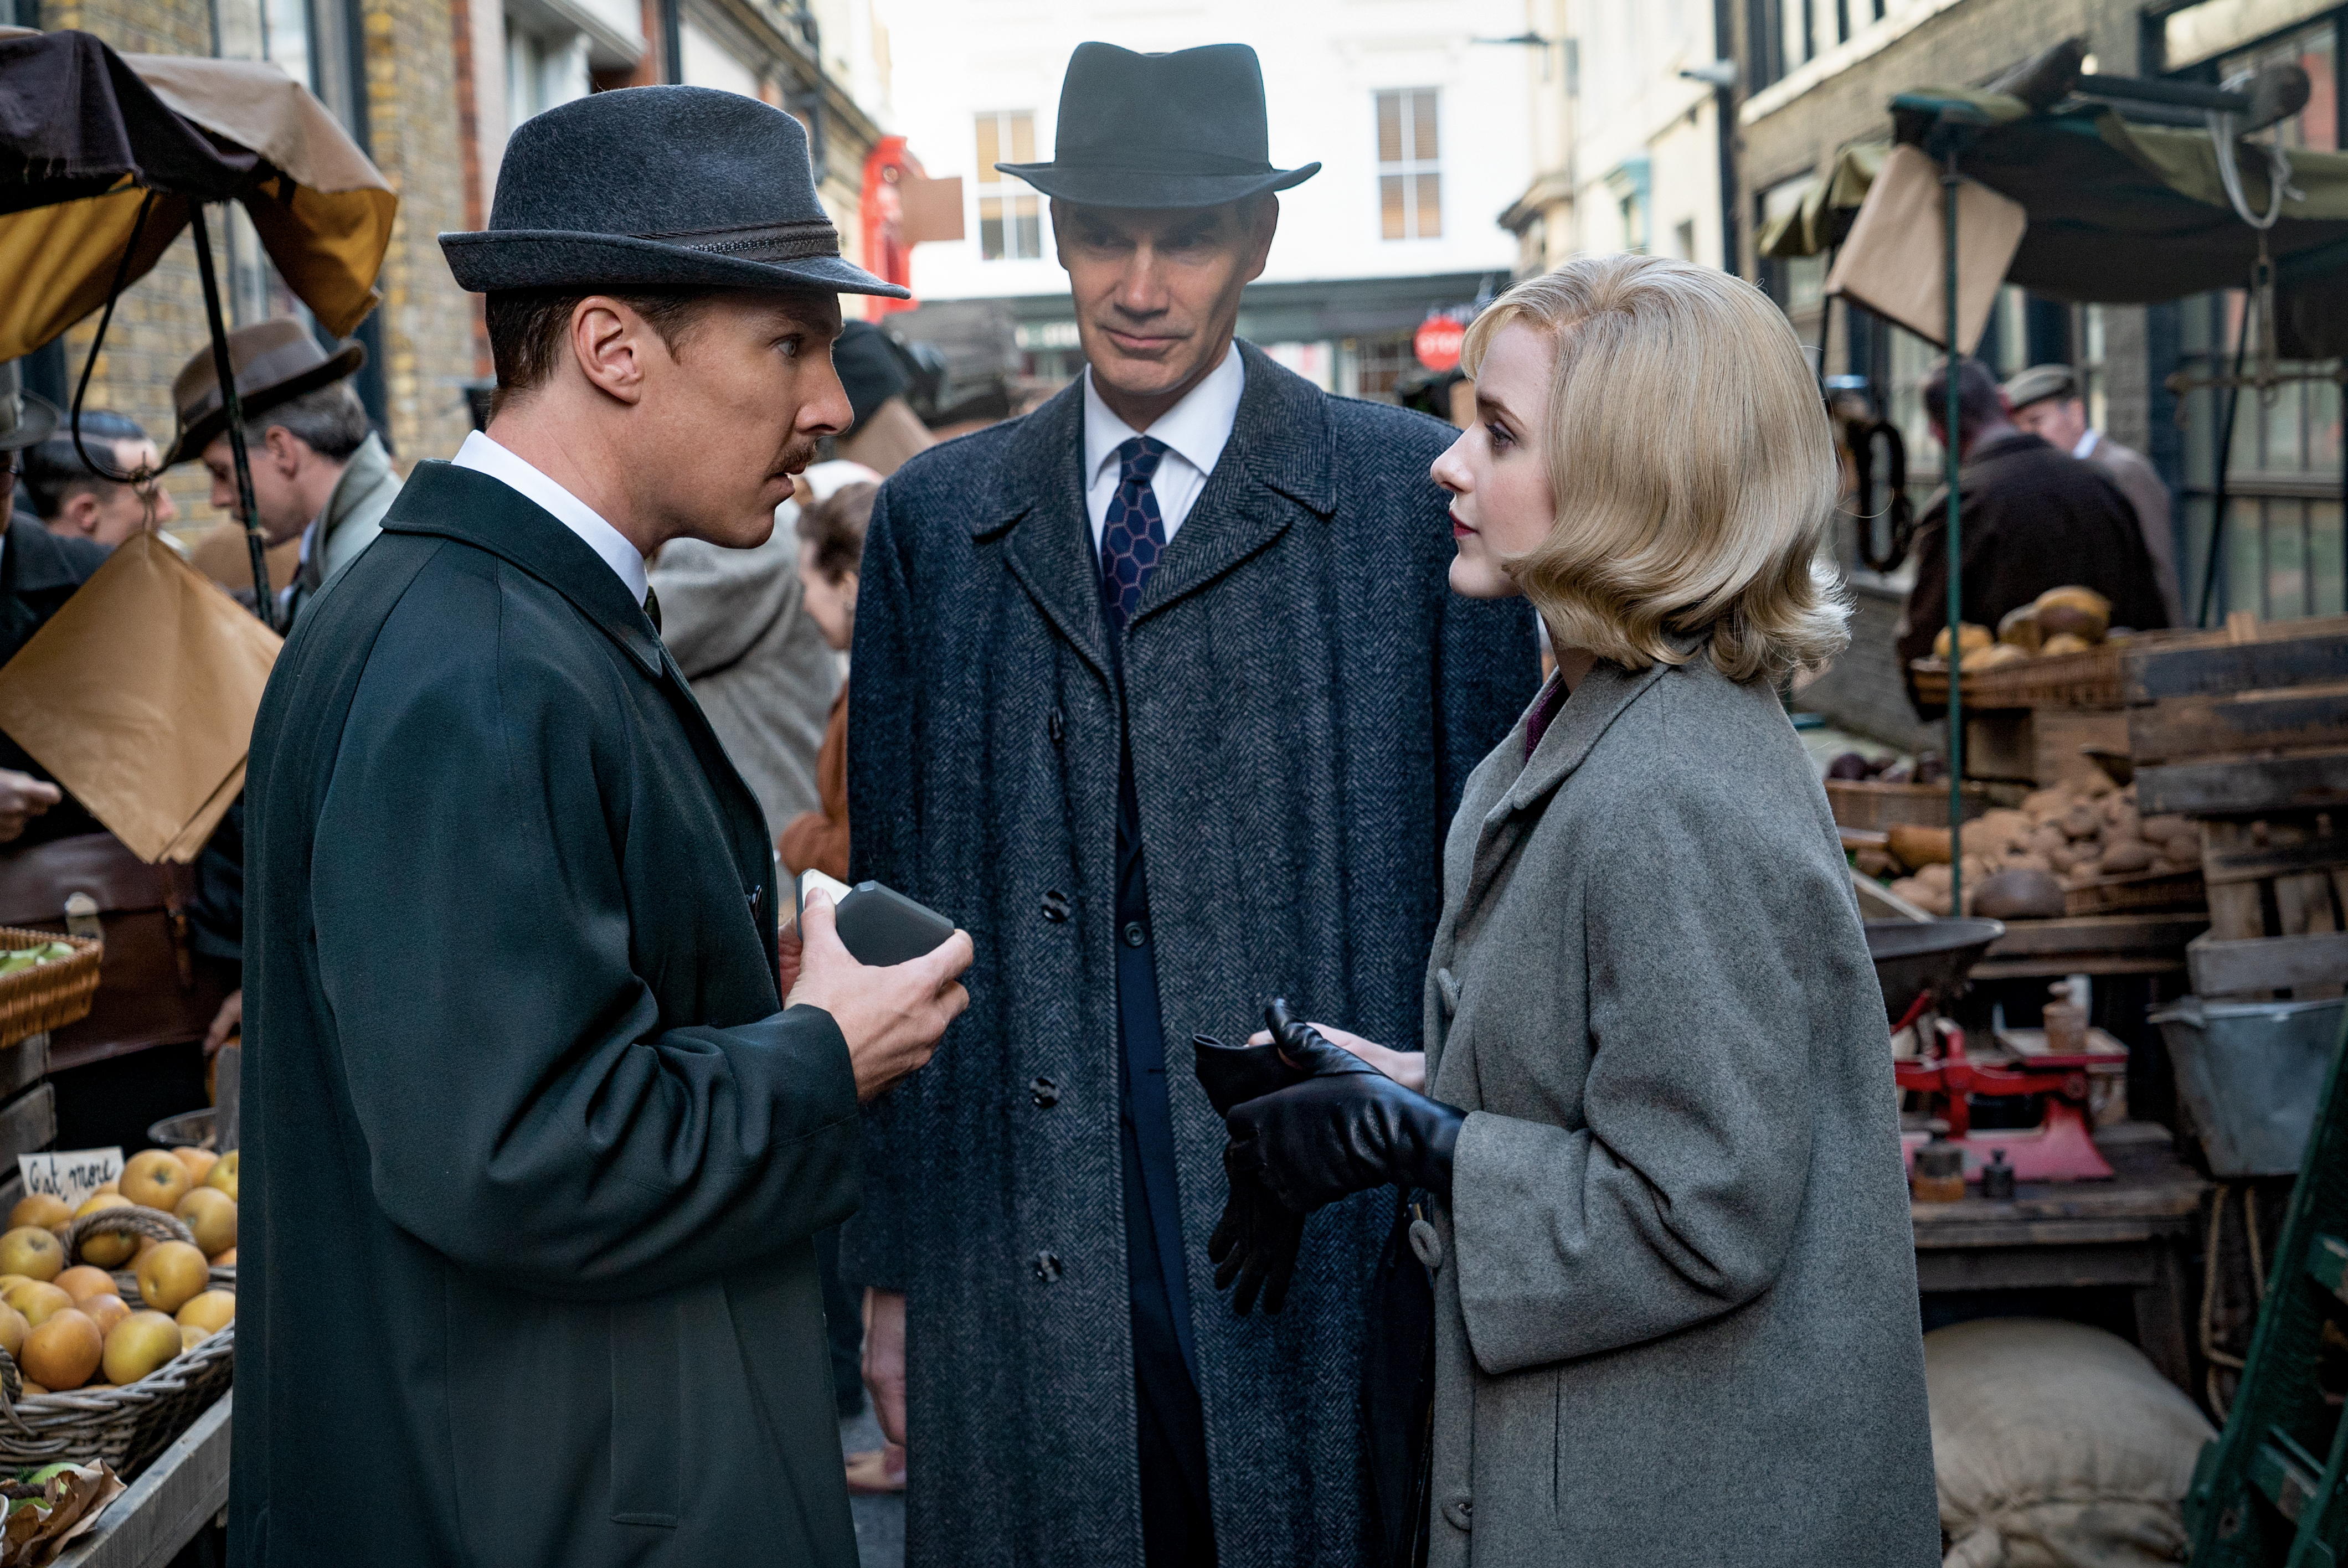 Benedict Cumberbatch, Angus Wright and Rachel Brosnahan in 'The Courier'